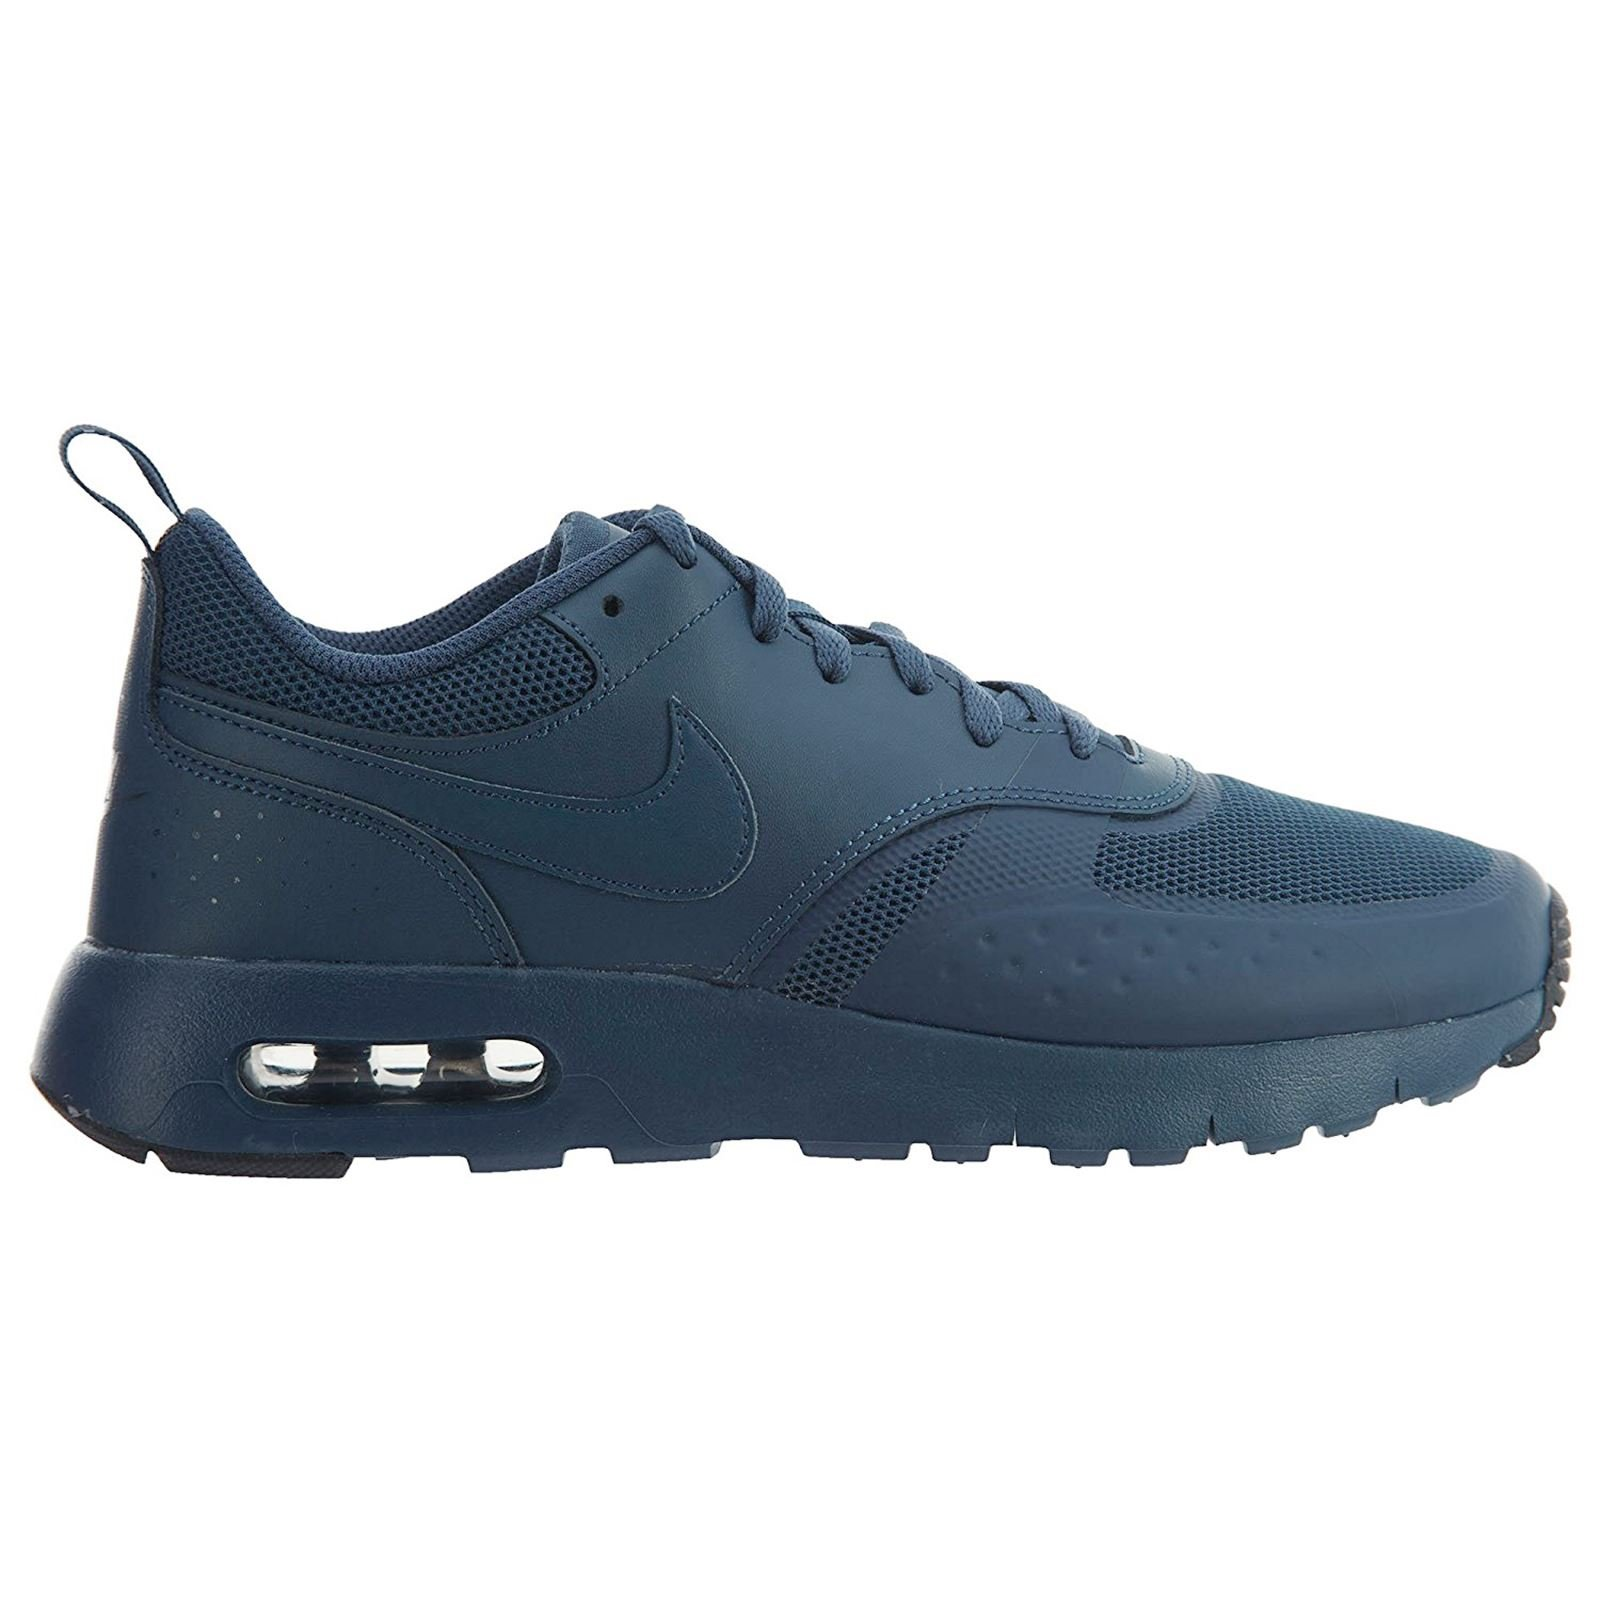 88e21b1642 Galleon - Nike Kids Air Max Vision (GS) Navy/Navy/Navy Running Shoe 4 Kids  US